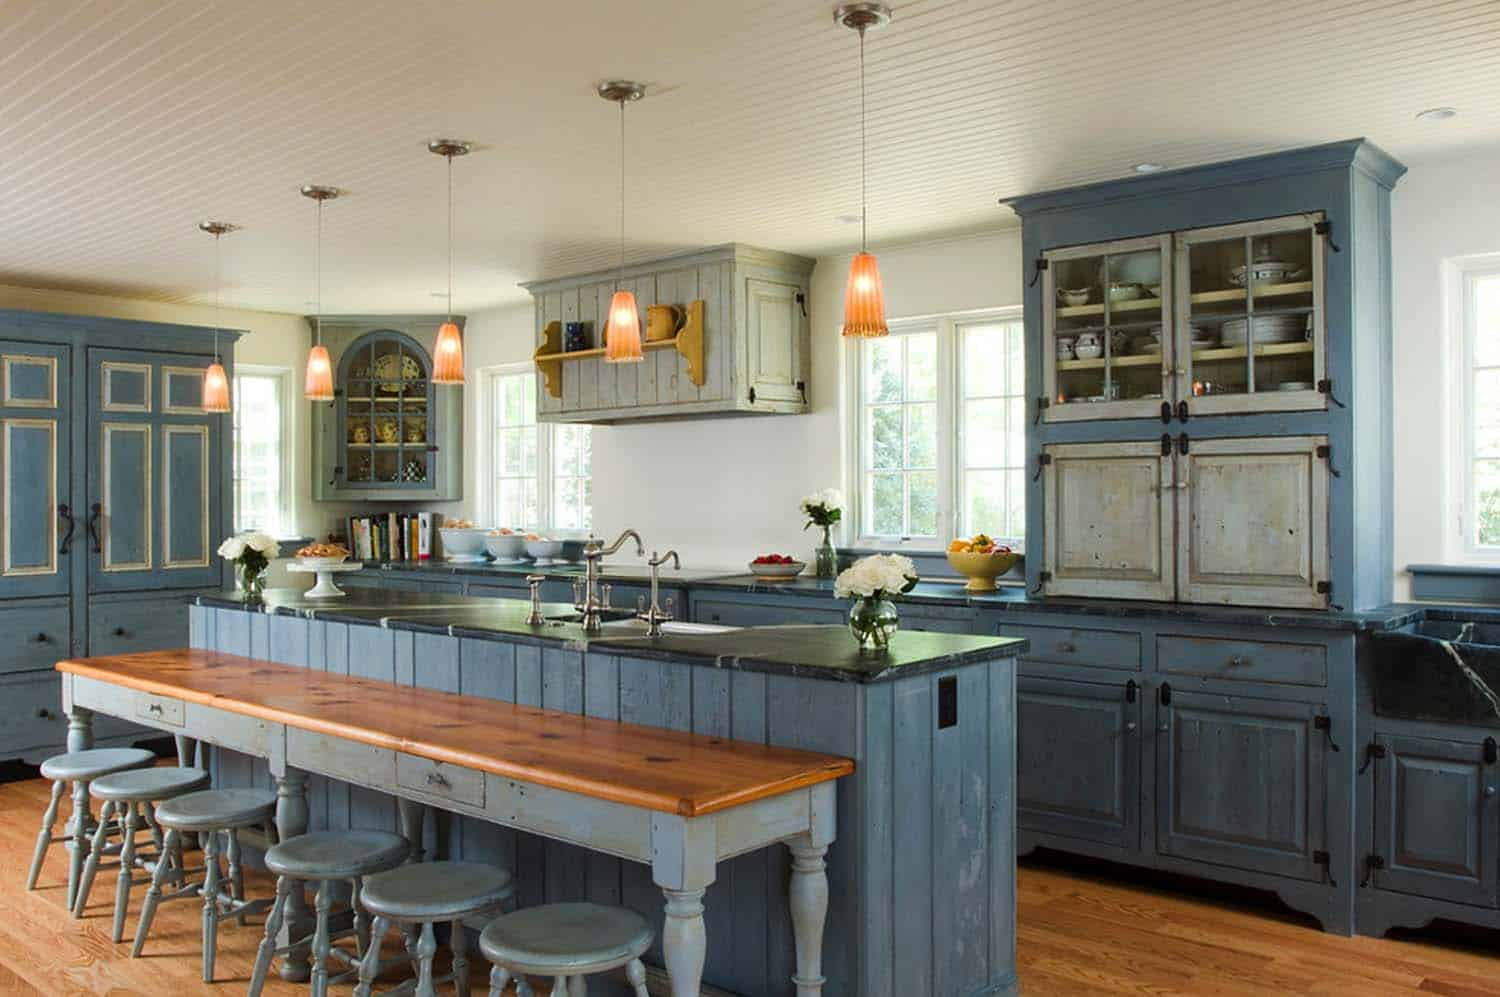 Amazing Country Chic Kitchens-31-1 Kindesign